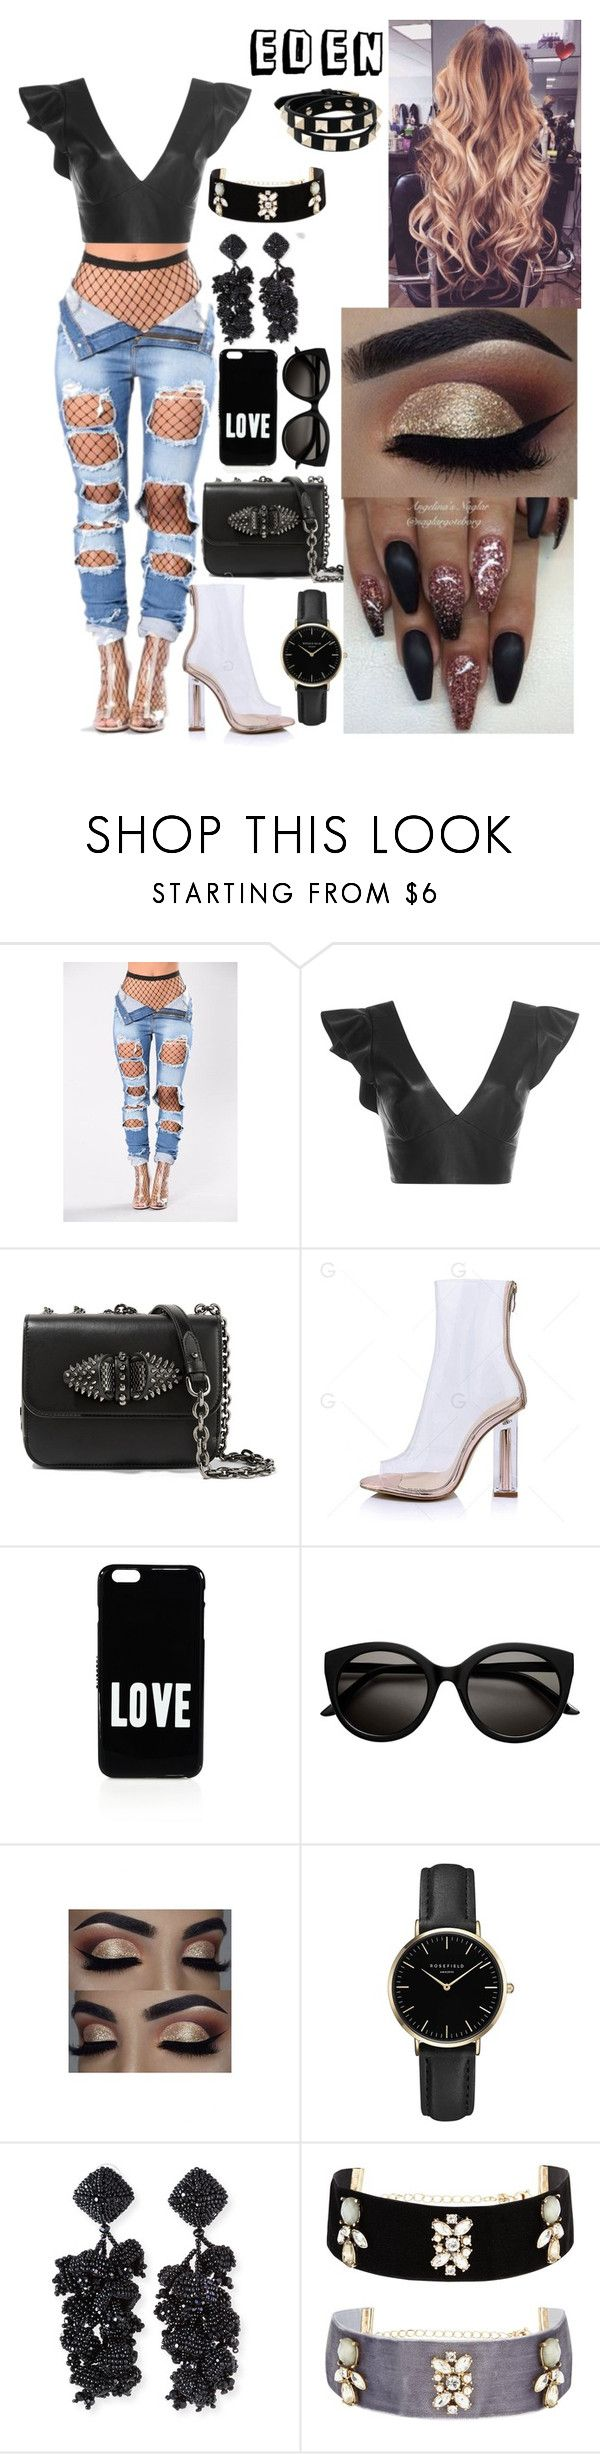 """""""Untitled #170"""" by eden-sahar-1 ❤ liked on Polyvore featuring Isabel Marant, Christian Louboutin, Givenchy, ROSEFIELD, NOIR Sachin + Babi and Valentino"""